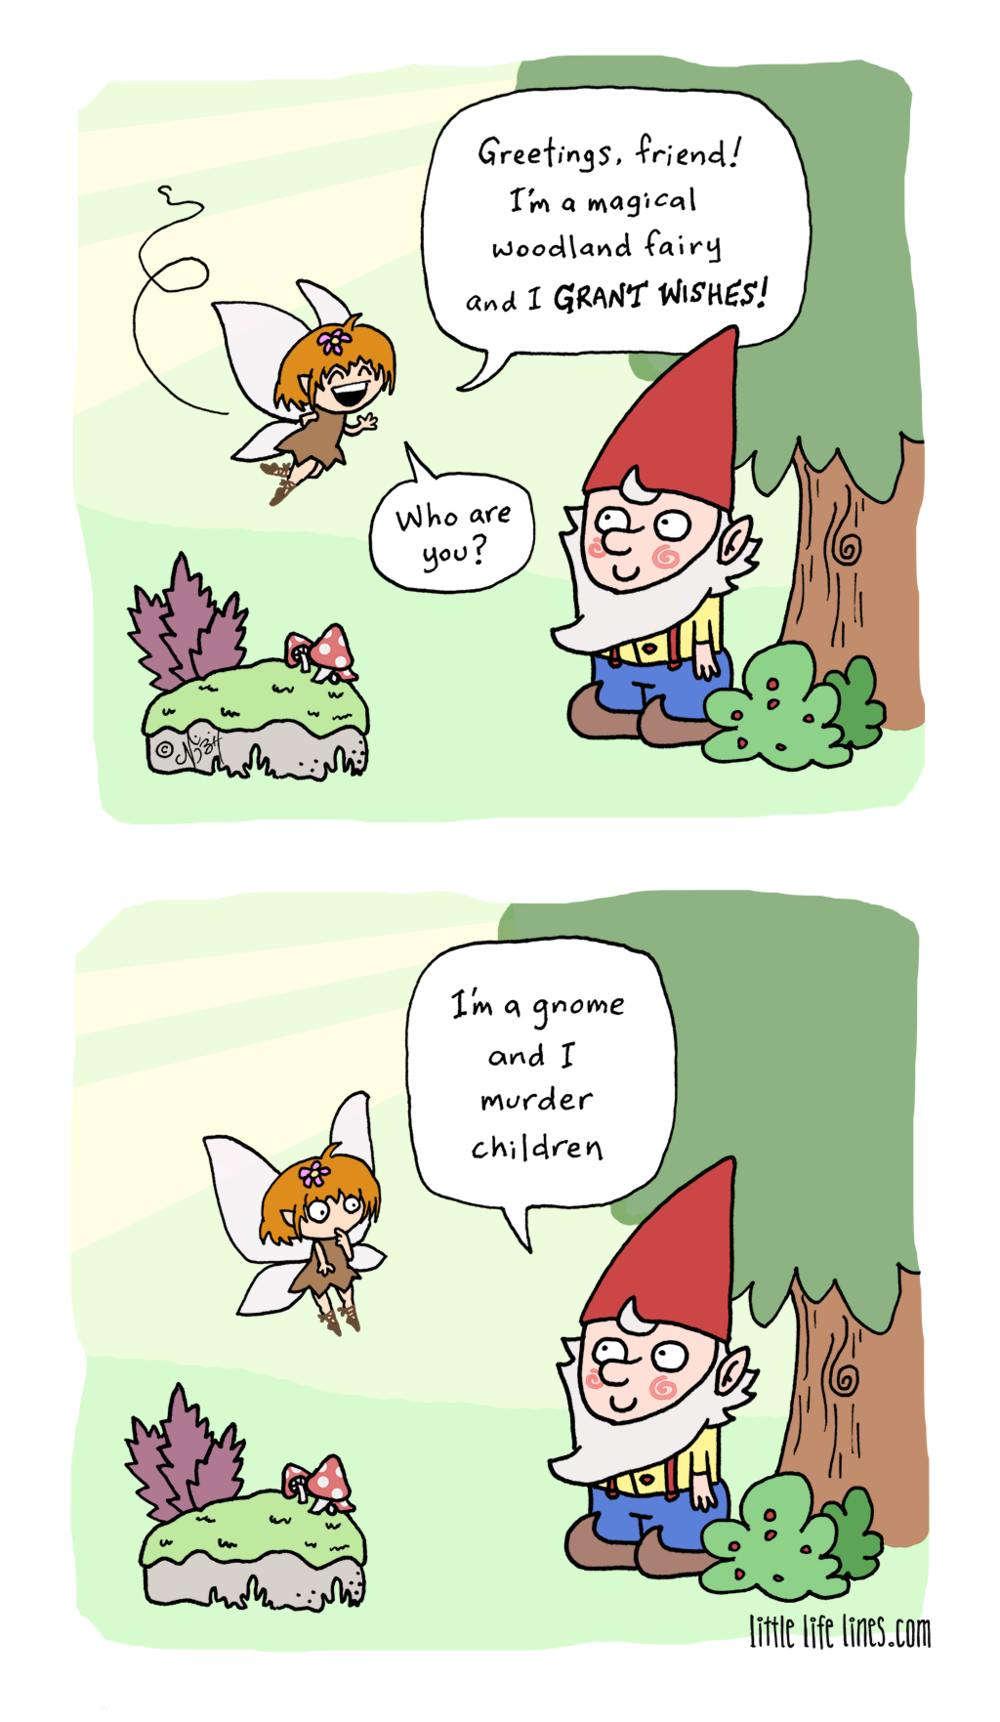 Cartoon Magical woodland fairy creature that grants wishes meets a homicidal gnome © little life lines comic by Nick Birch